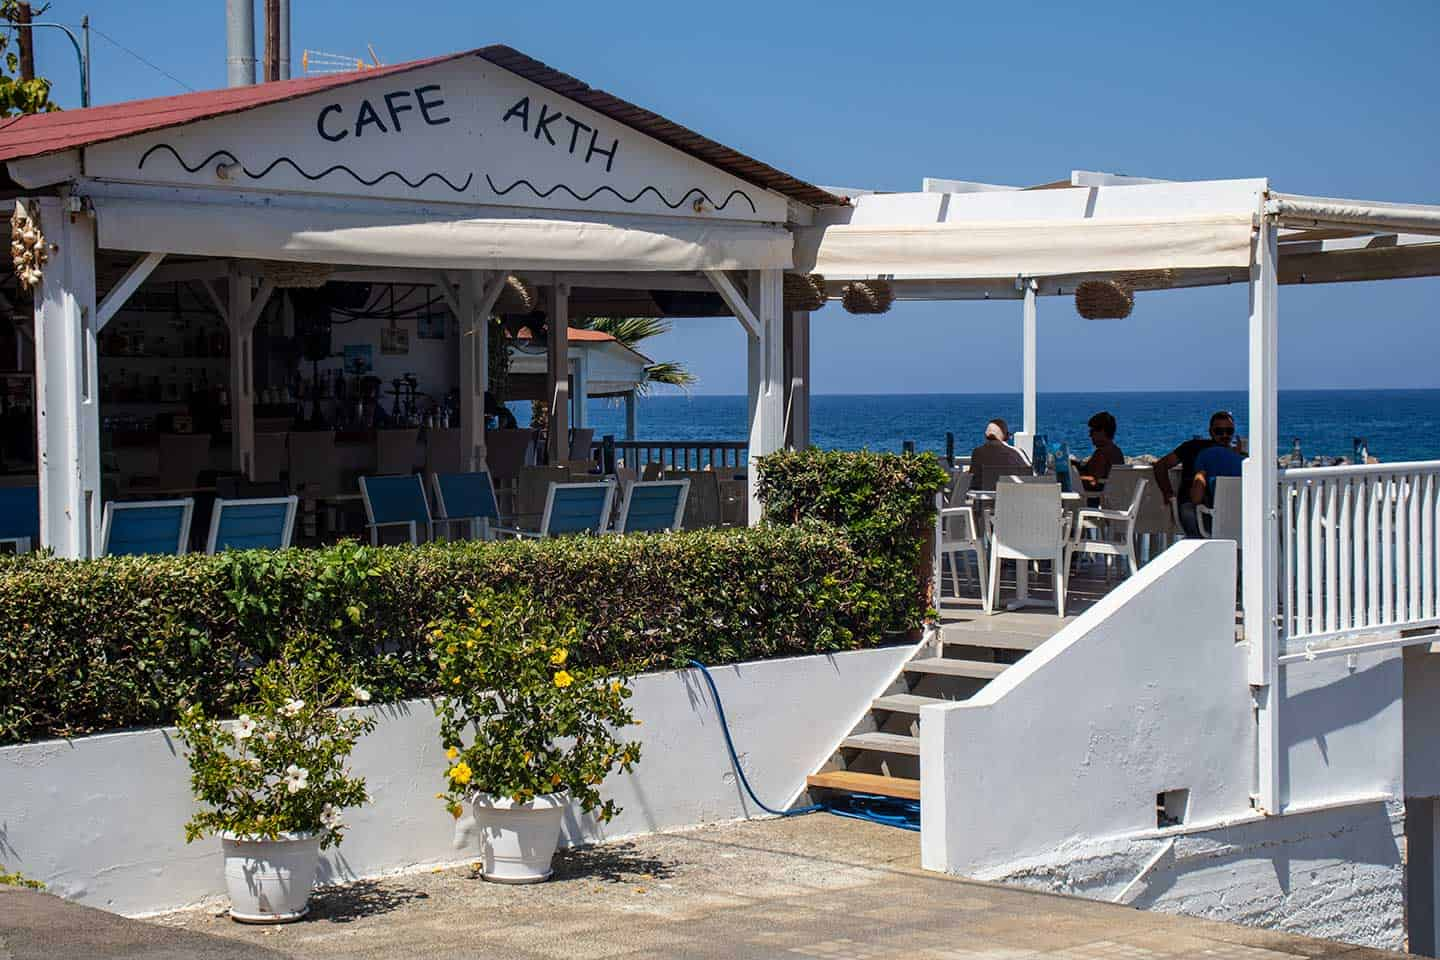 Panormo beach Image of Cafe Akti on the seafront at Panormos beach